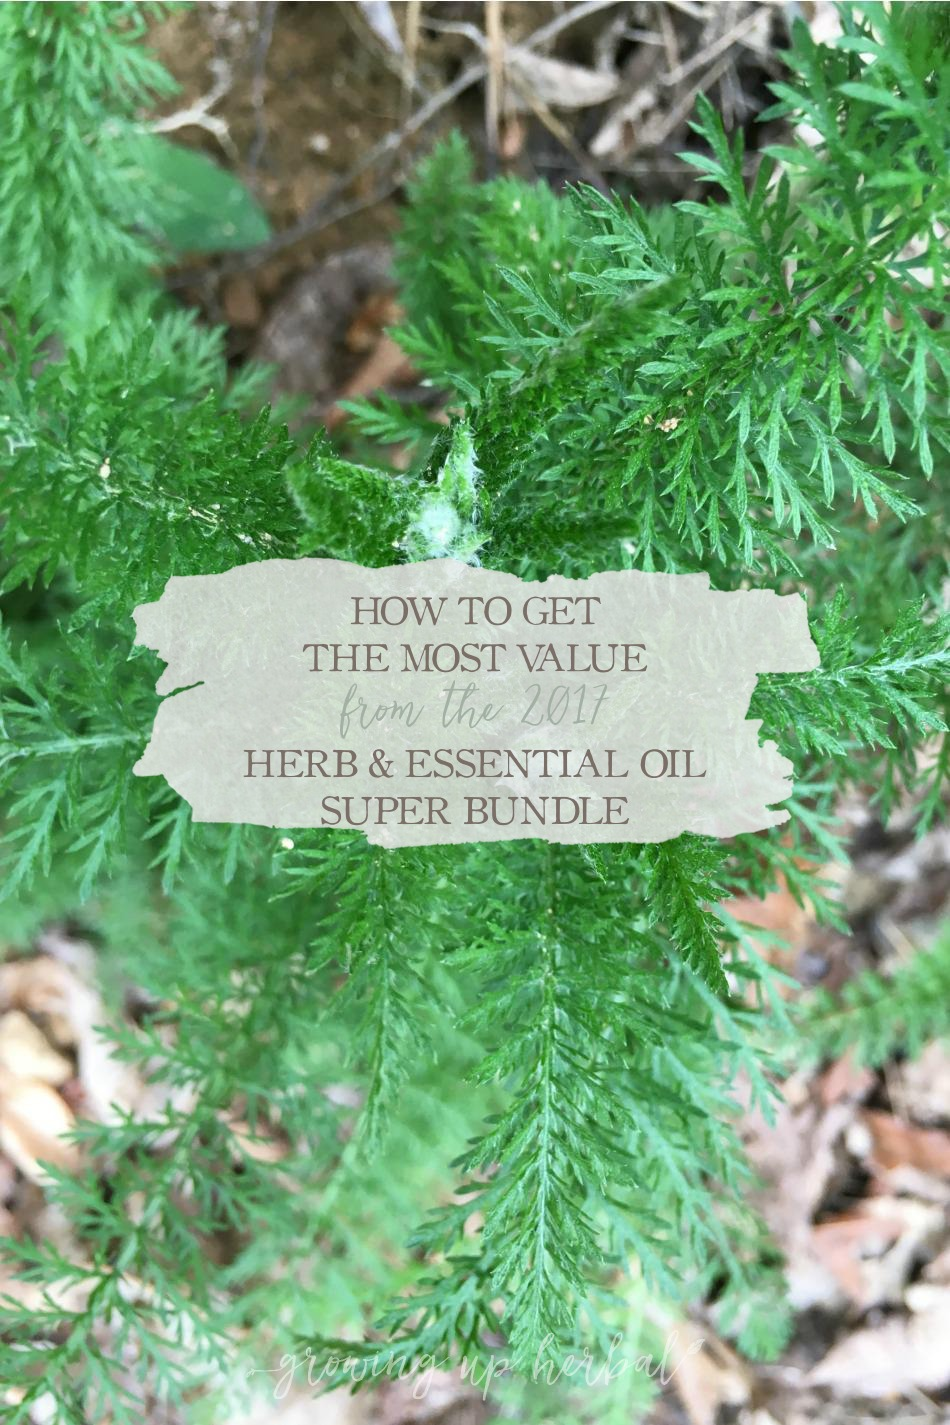 How To Get The Most Value From The 2017 Herb & Essential Oil Super Bundle | Growing Up Herbal | Here's how I get the most out of bundle sales. Plus, I'm sharing my top 10 picks from this year's Herb & Essential Oil Super Bundle!